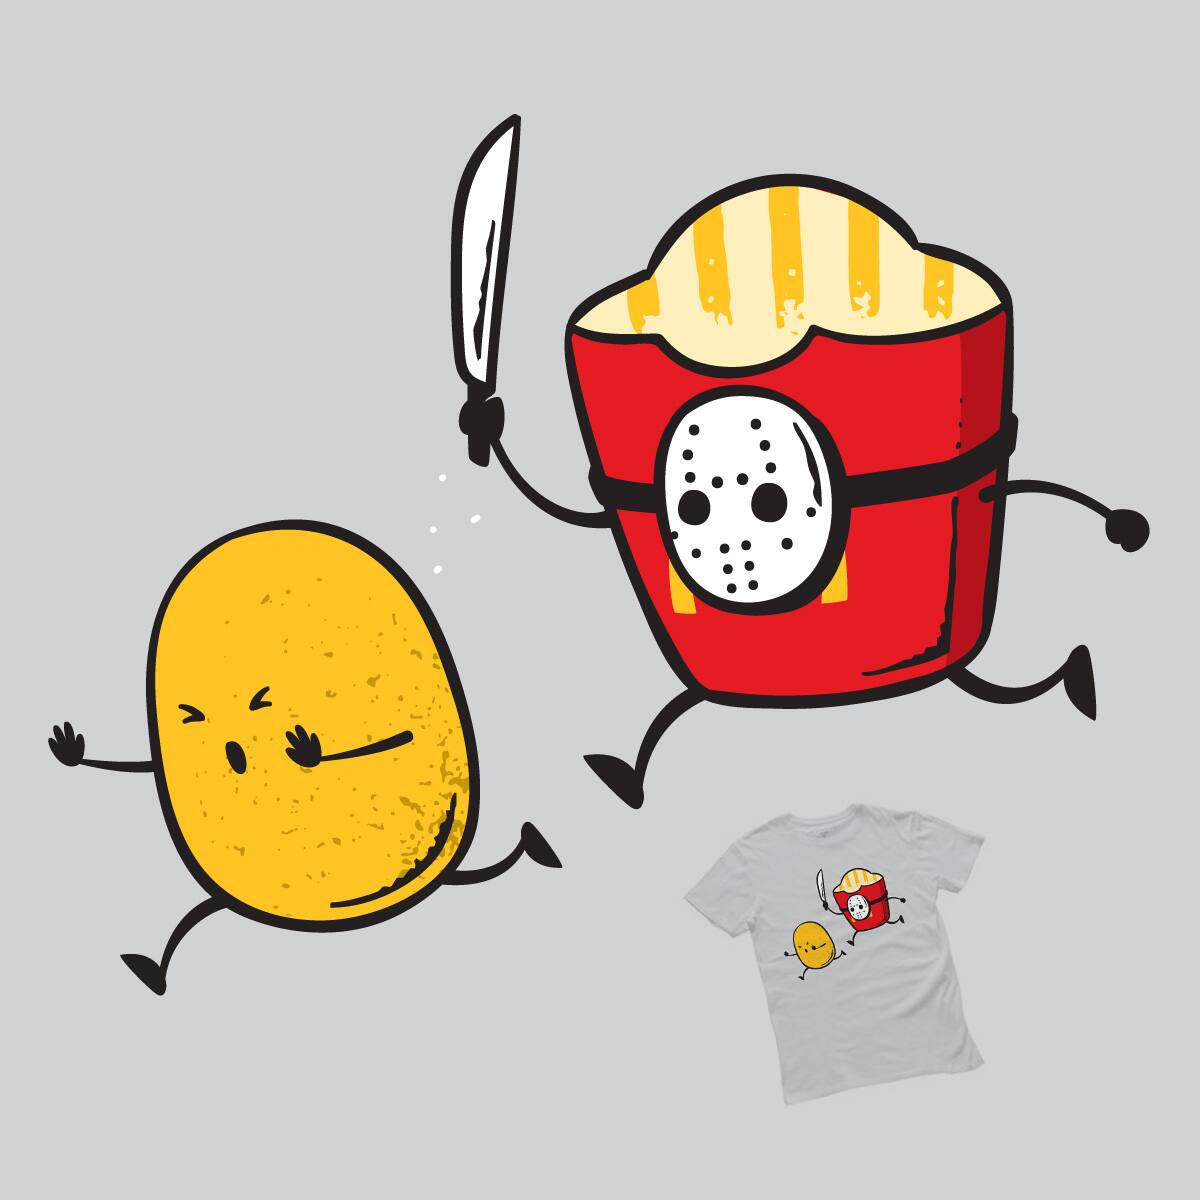 McJason by Flying_Mouse on Threadless